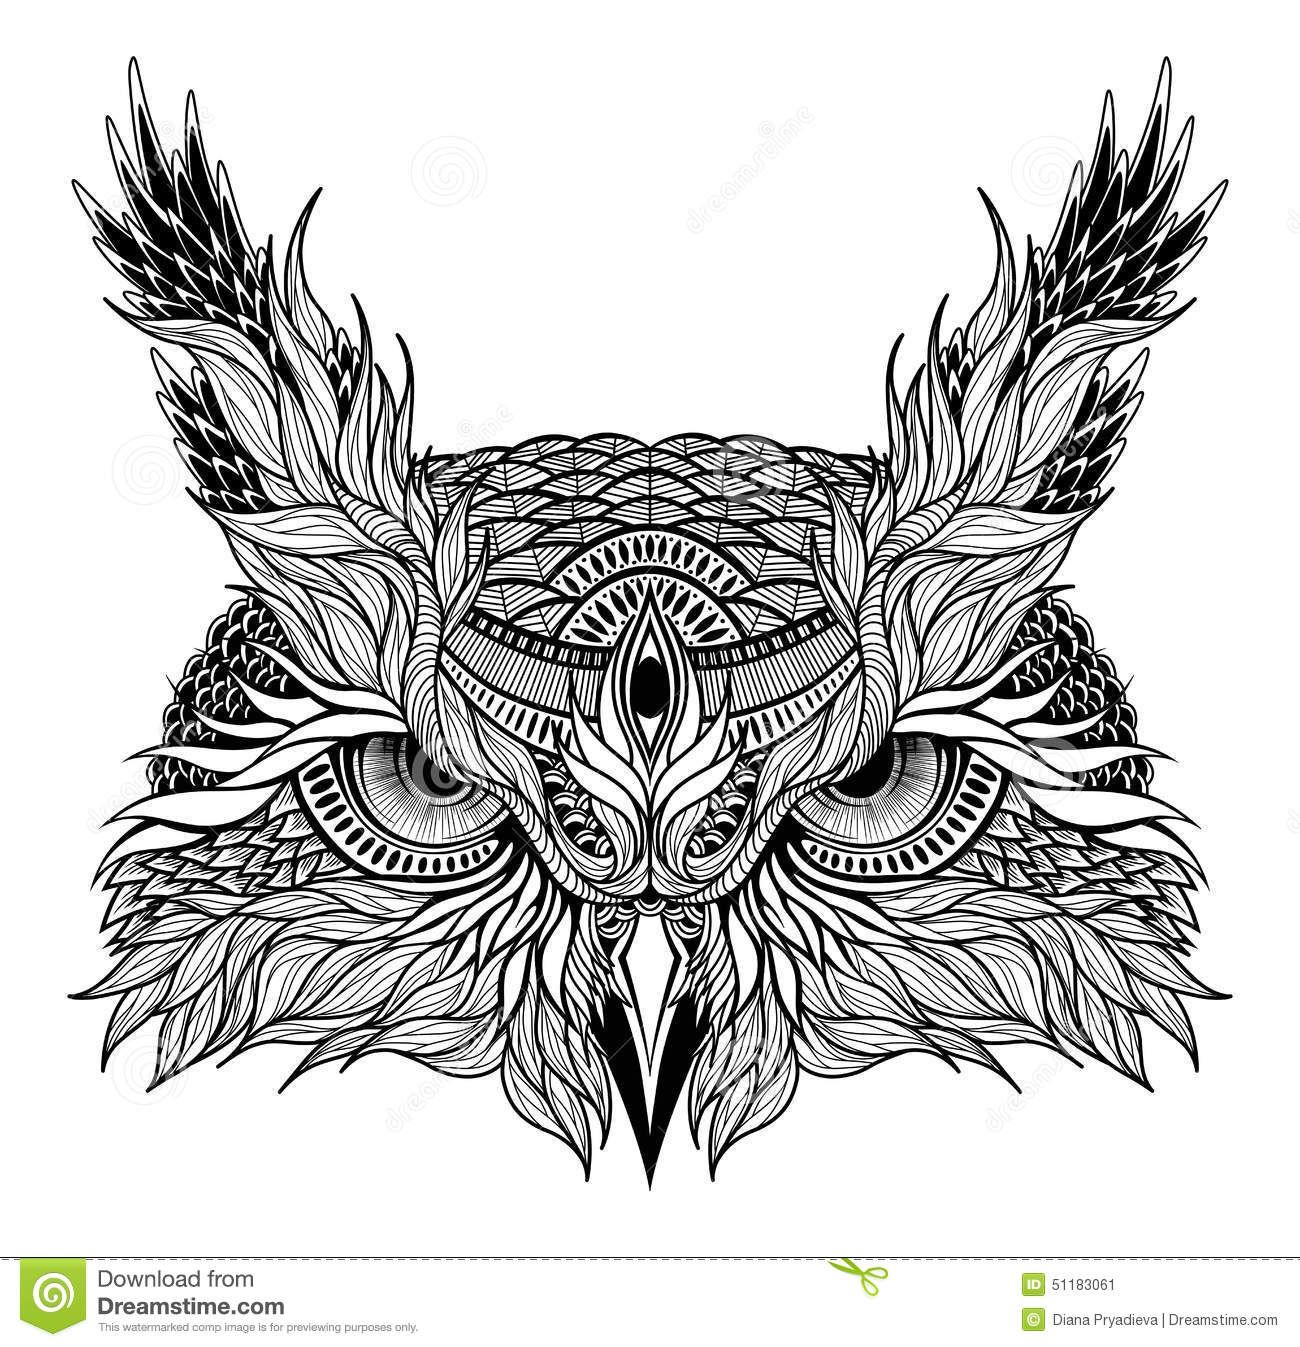 Psychedelic Owl Head Tattoo Tattoodesign Owl Tattoo Meaning Owl Head Owl Tattoo